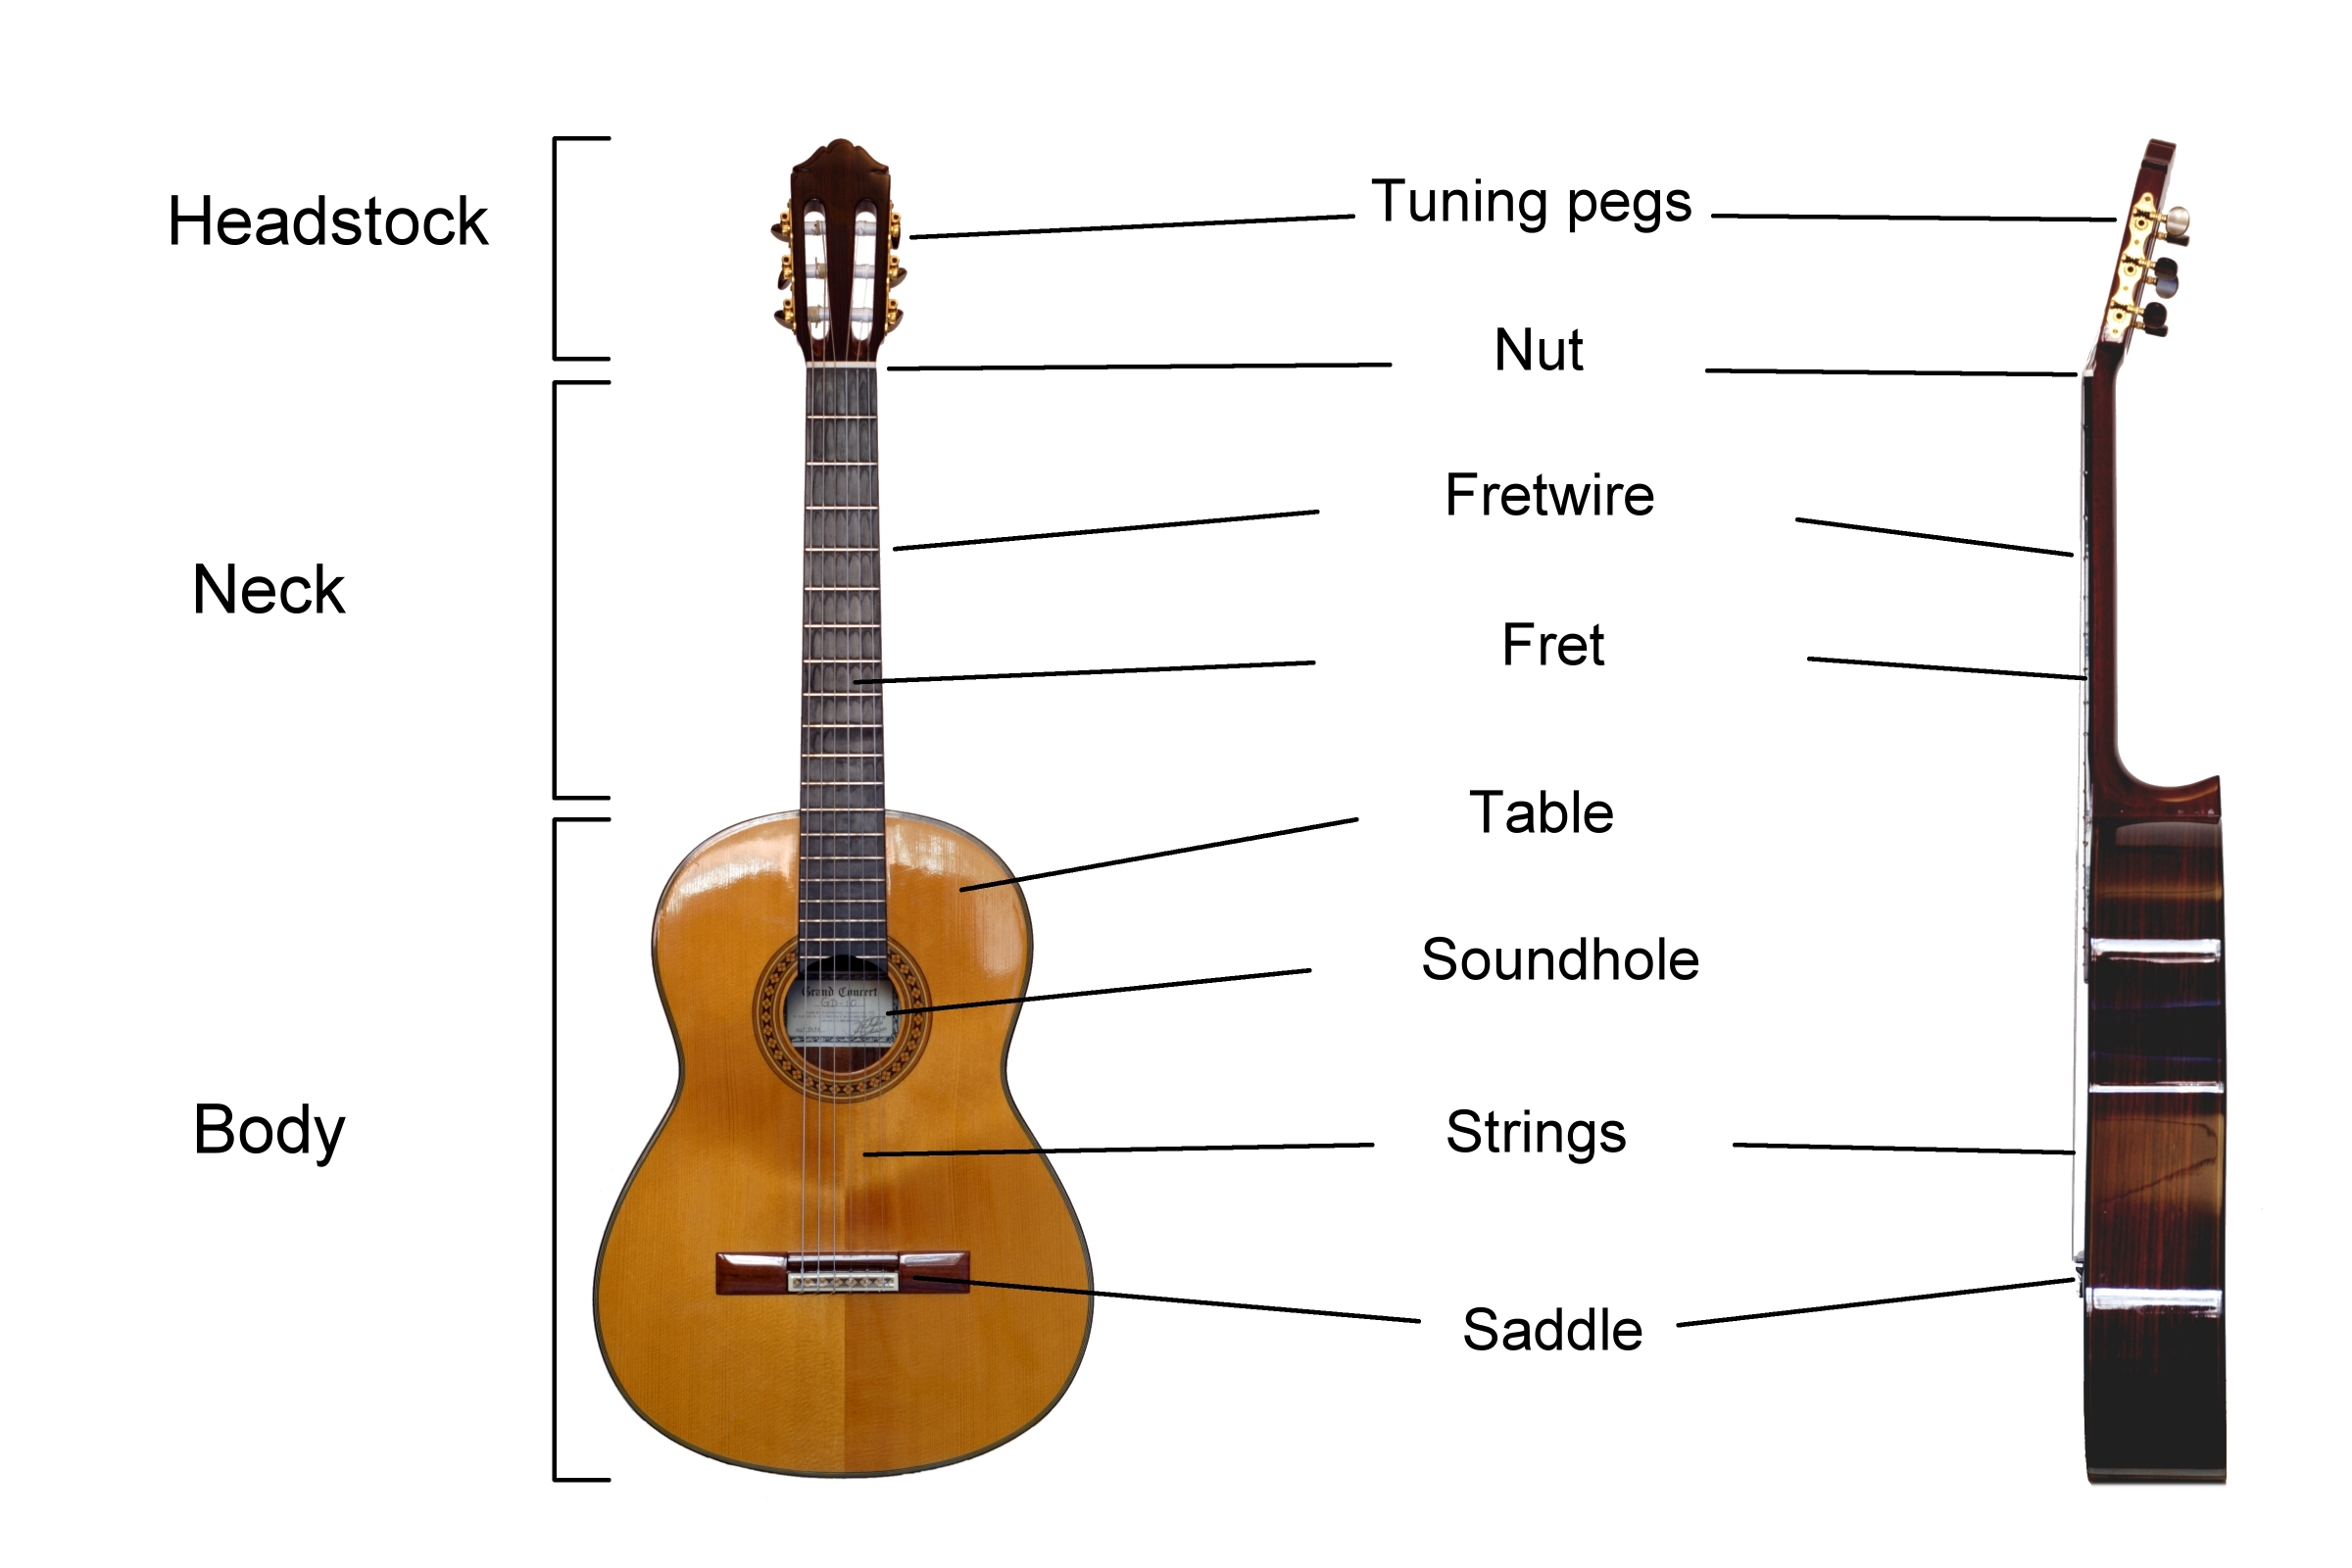 Strings On A Ukulele Diagram Trusted Wiring Diagrams Ukulelediagram File Classical Guitar Labelled English Wikimedia Commons String Position